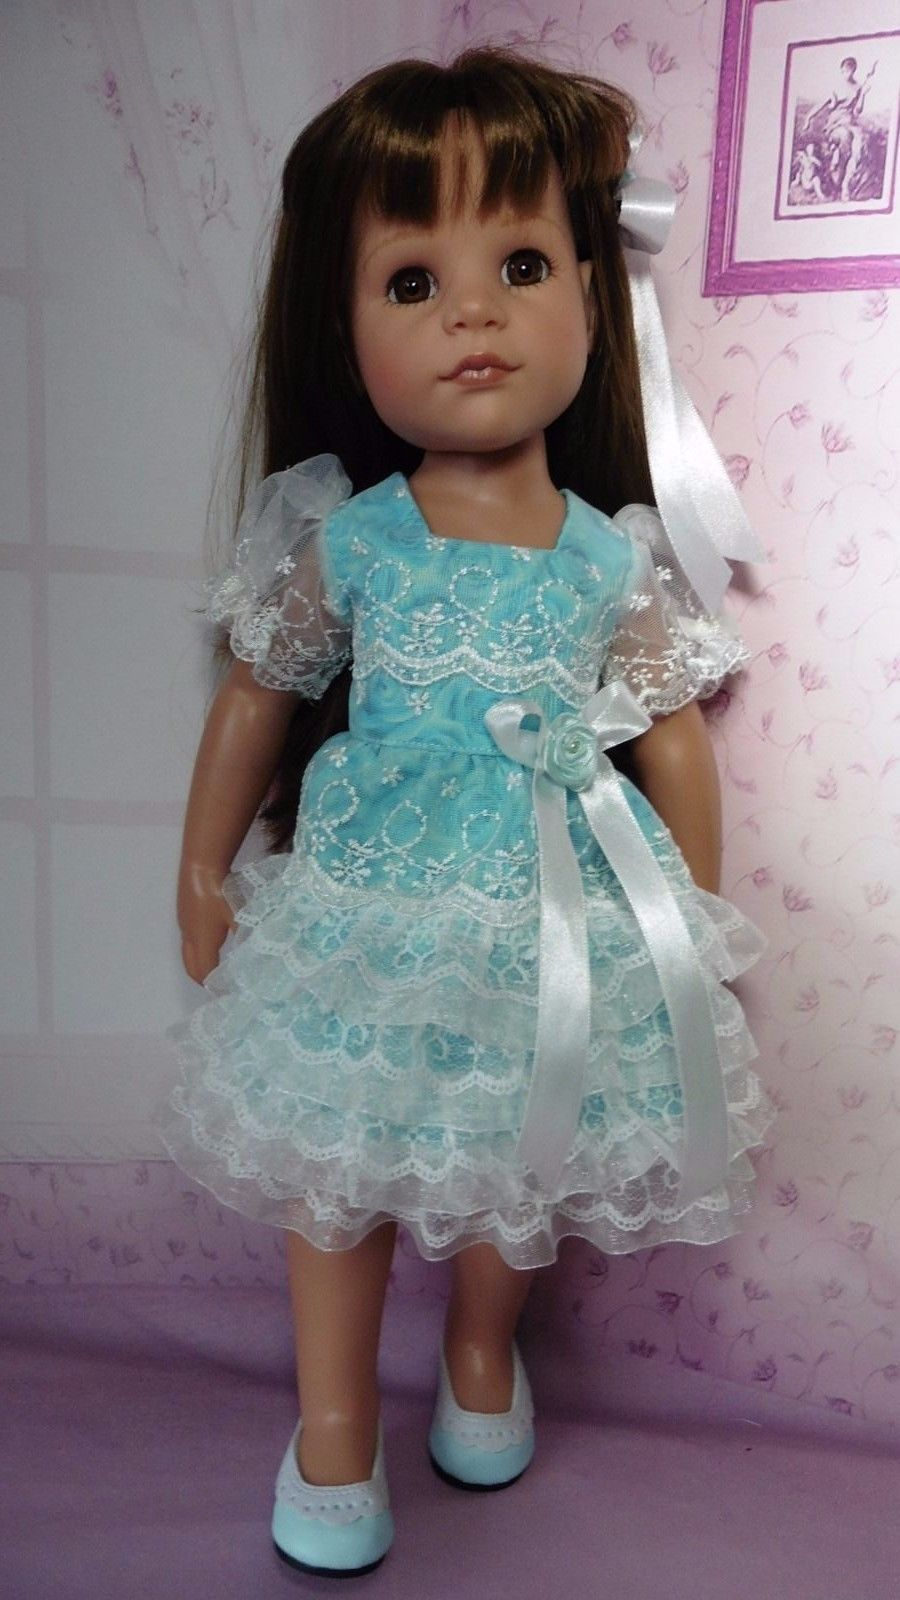 PIXIES HAND MADE PARTY DRESS fits 18 in SLIM DOLLS. like GOTZ HANNAH ...